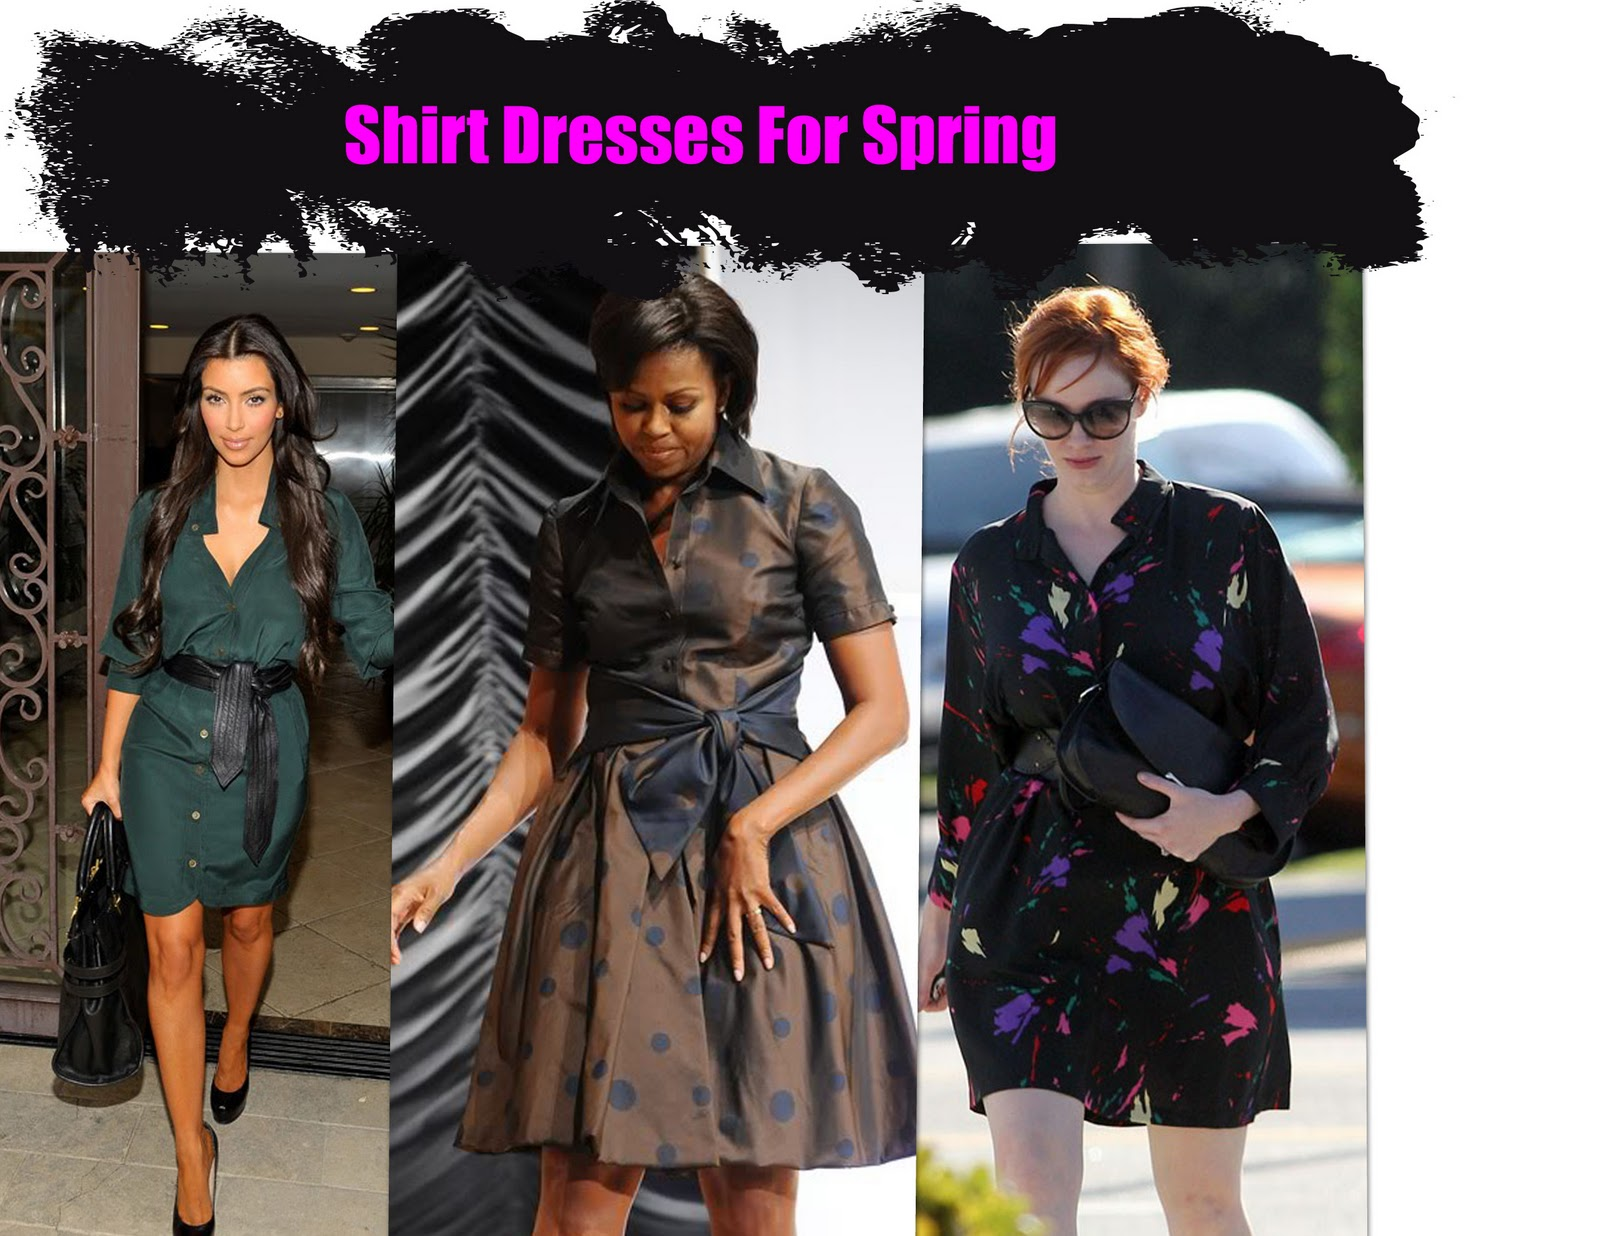 Shirt Dresses Are One of The